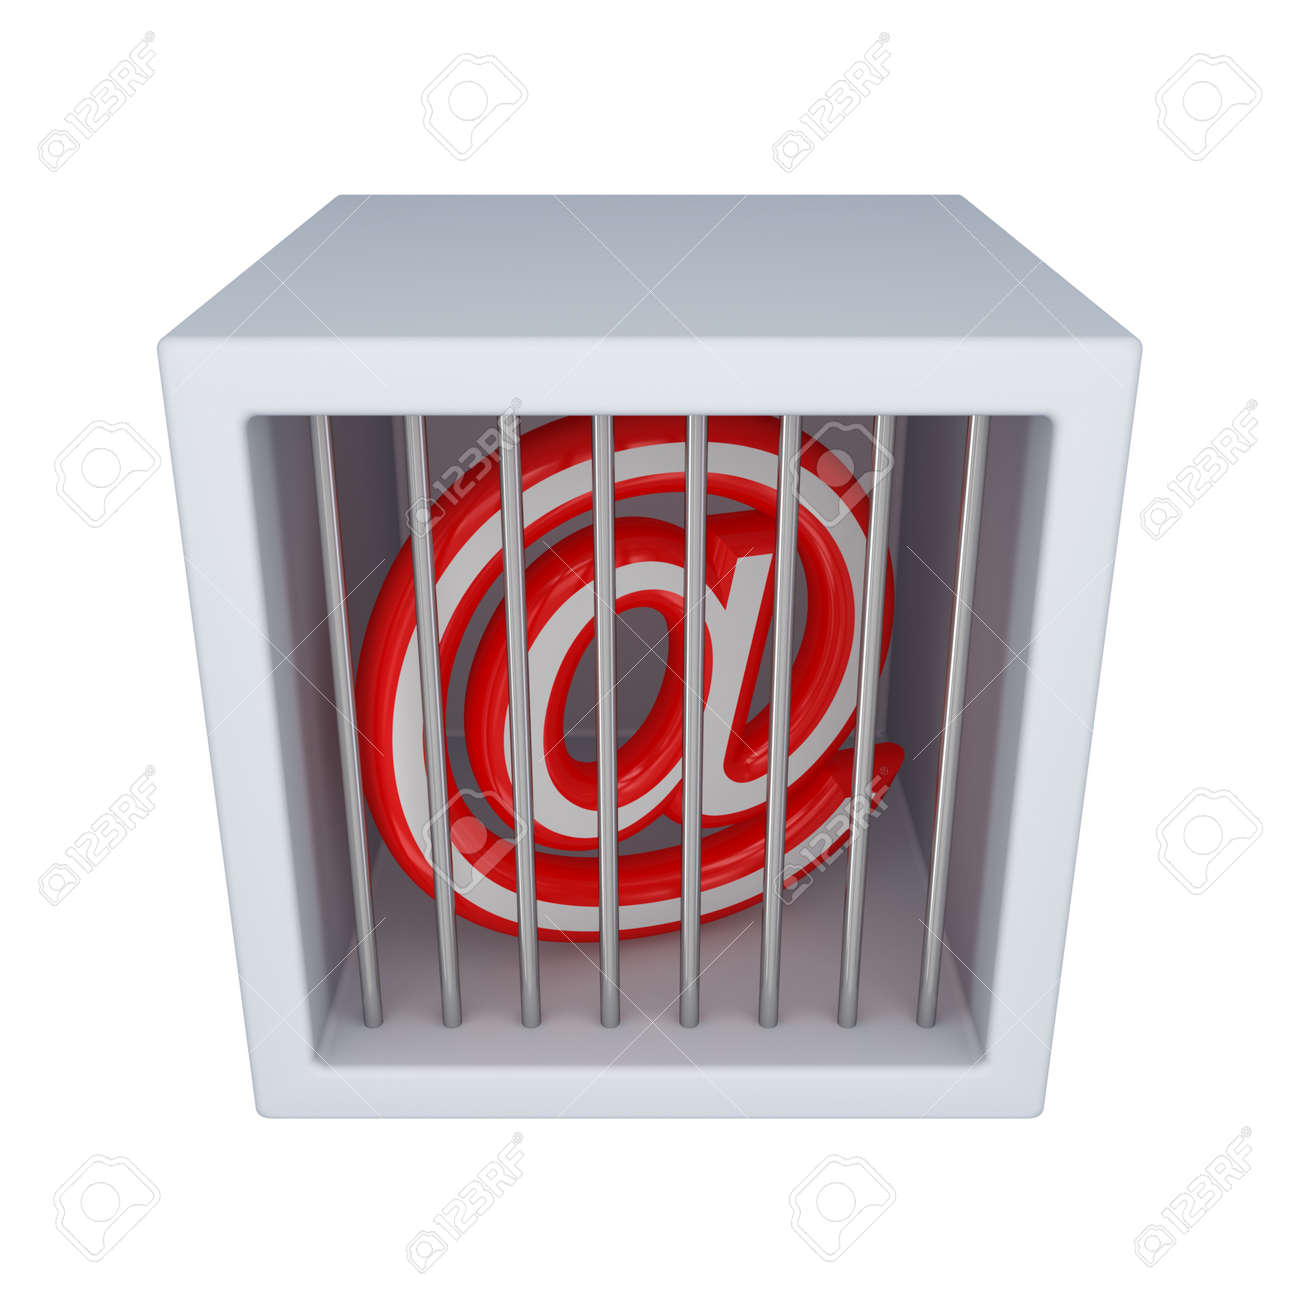 Email sign in a jail.Isolated on white background.3d rendered. Stock Photo - 12217733